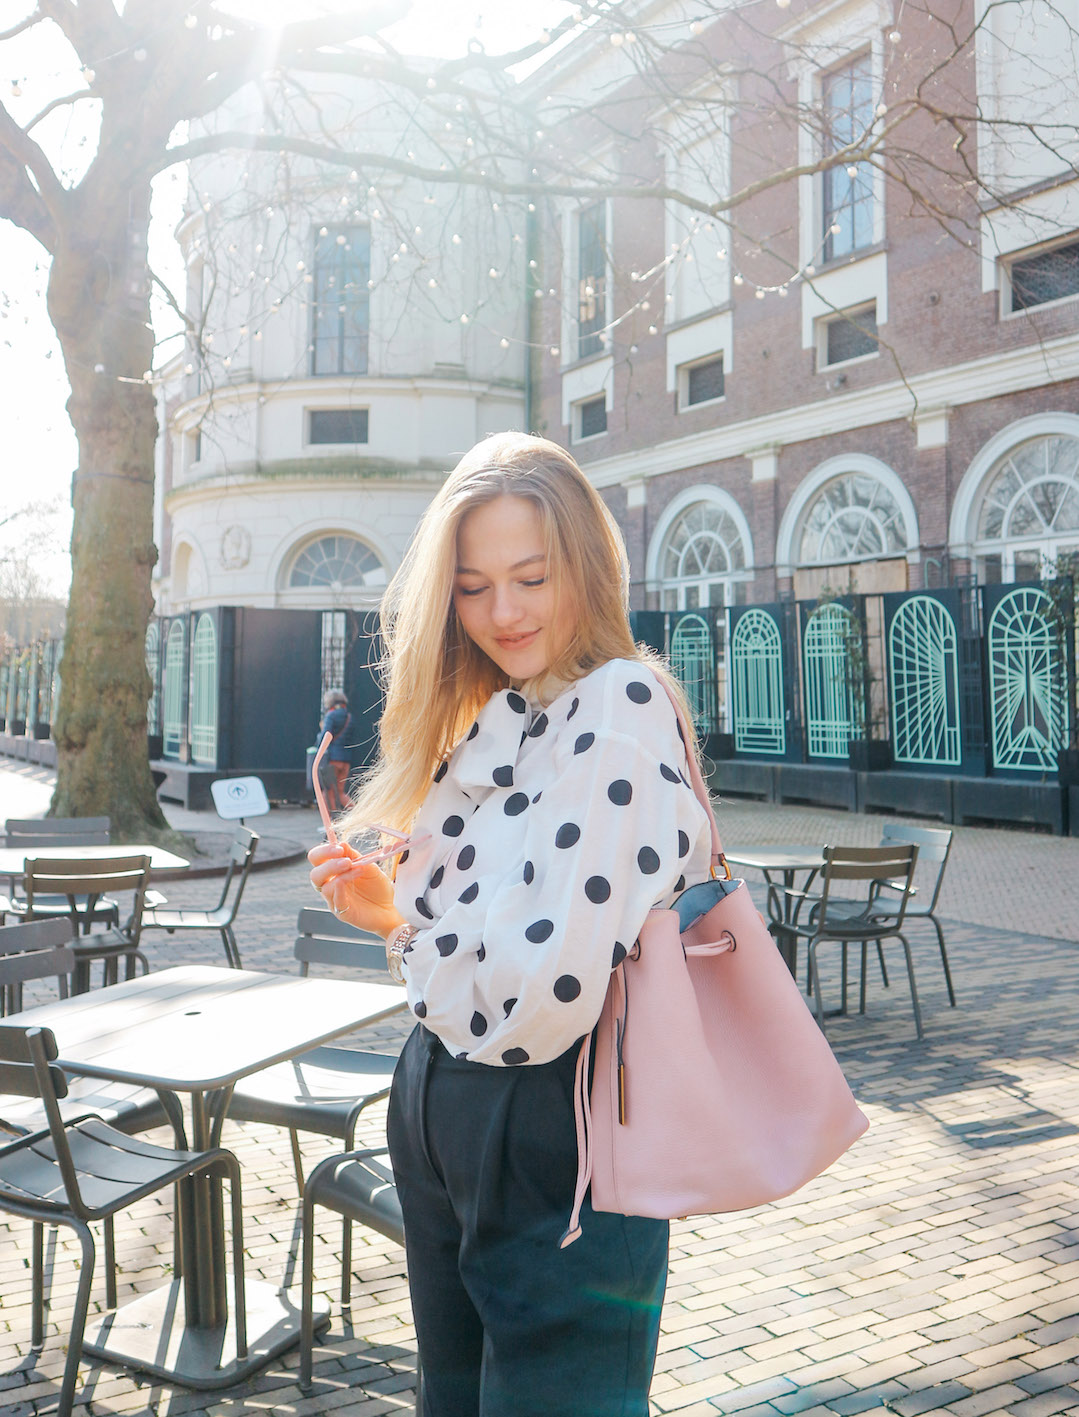 floortjeloves, polka dots, polkadots, easter, polkadots for easter, polka dots for easter, smaak, smaak Amsterdam, AGL, loafers, heart sunglasses, H&M, H&M trousers, H&M blouse